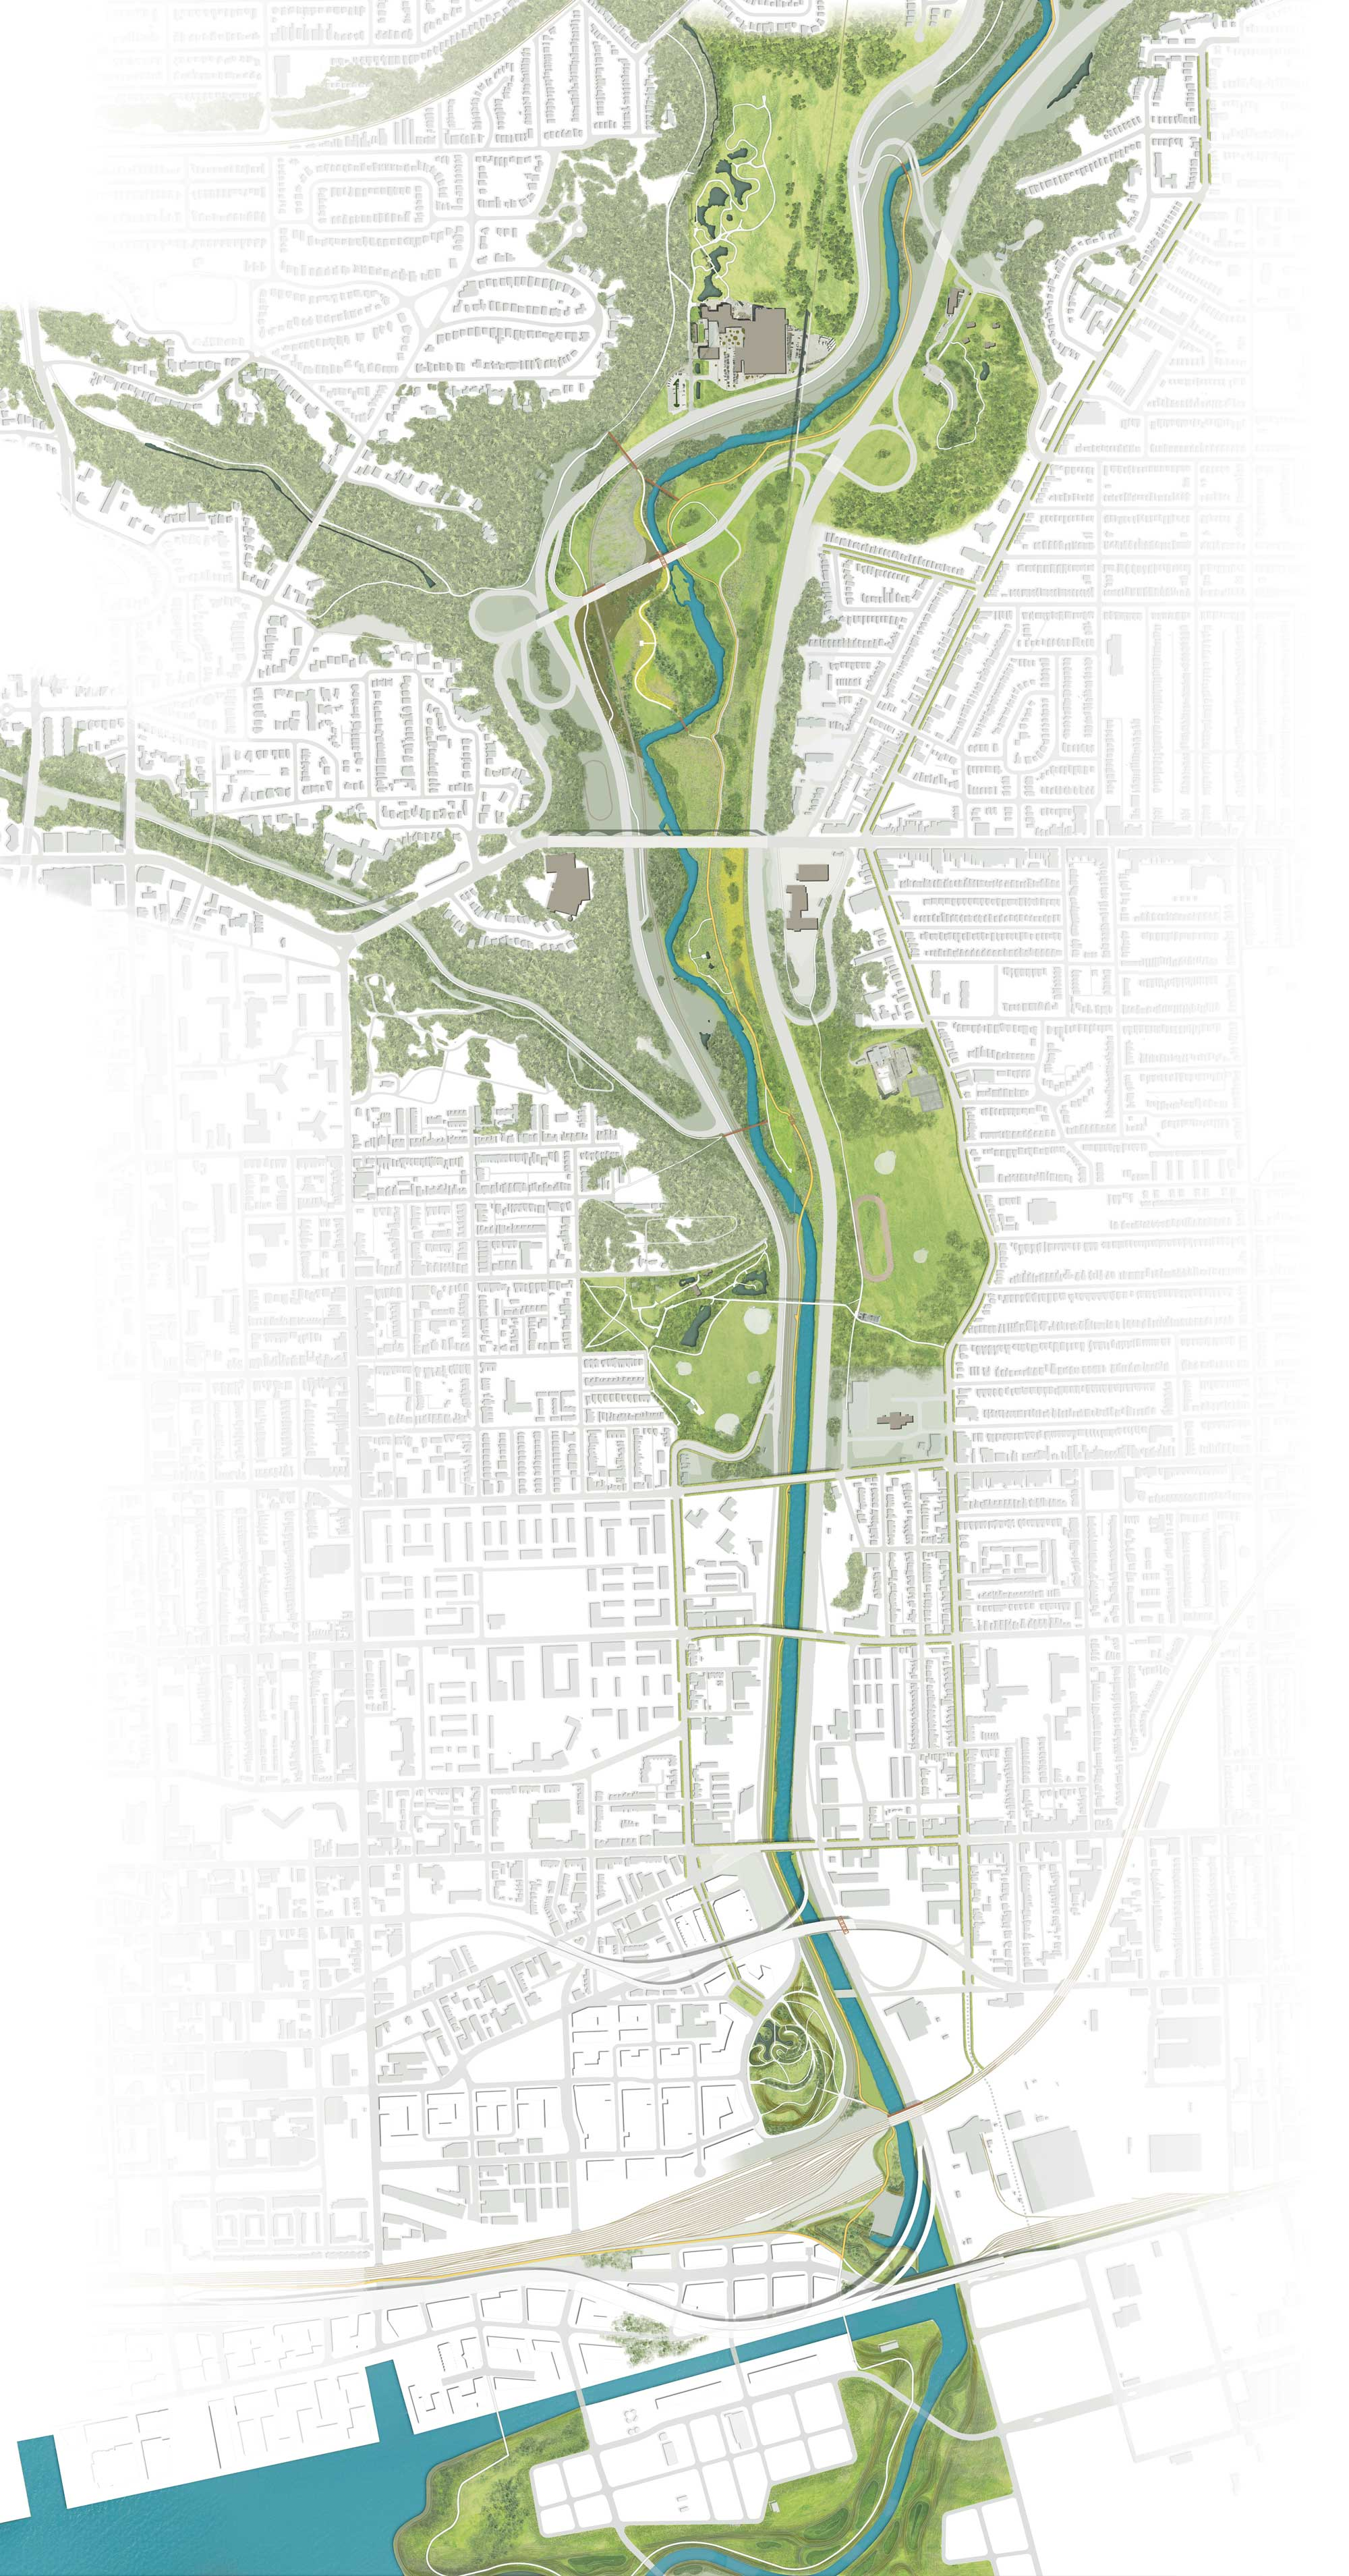 Park Map | The Don River Valley Park